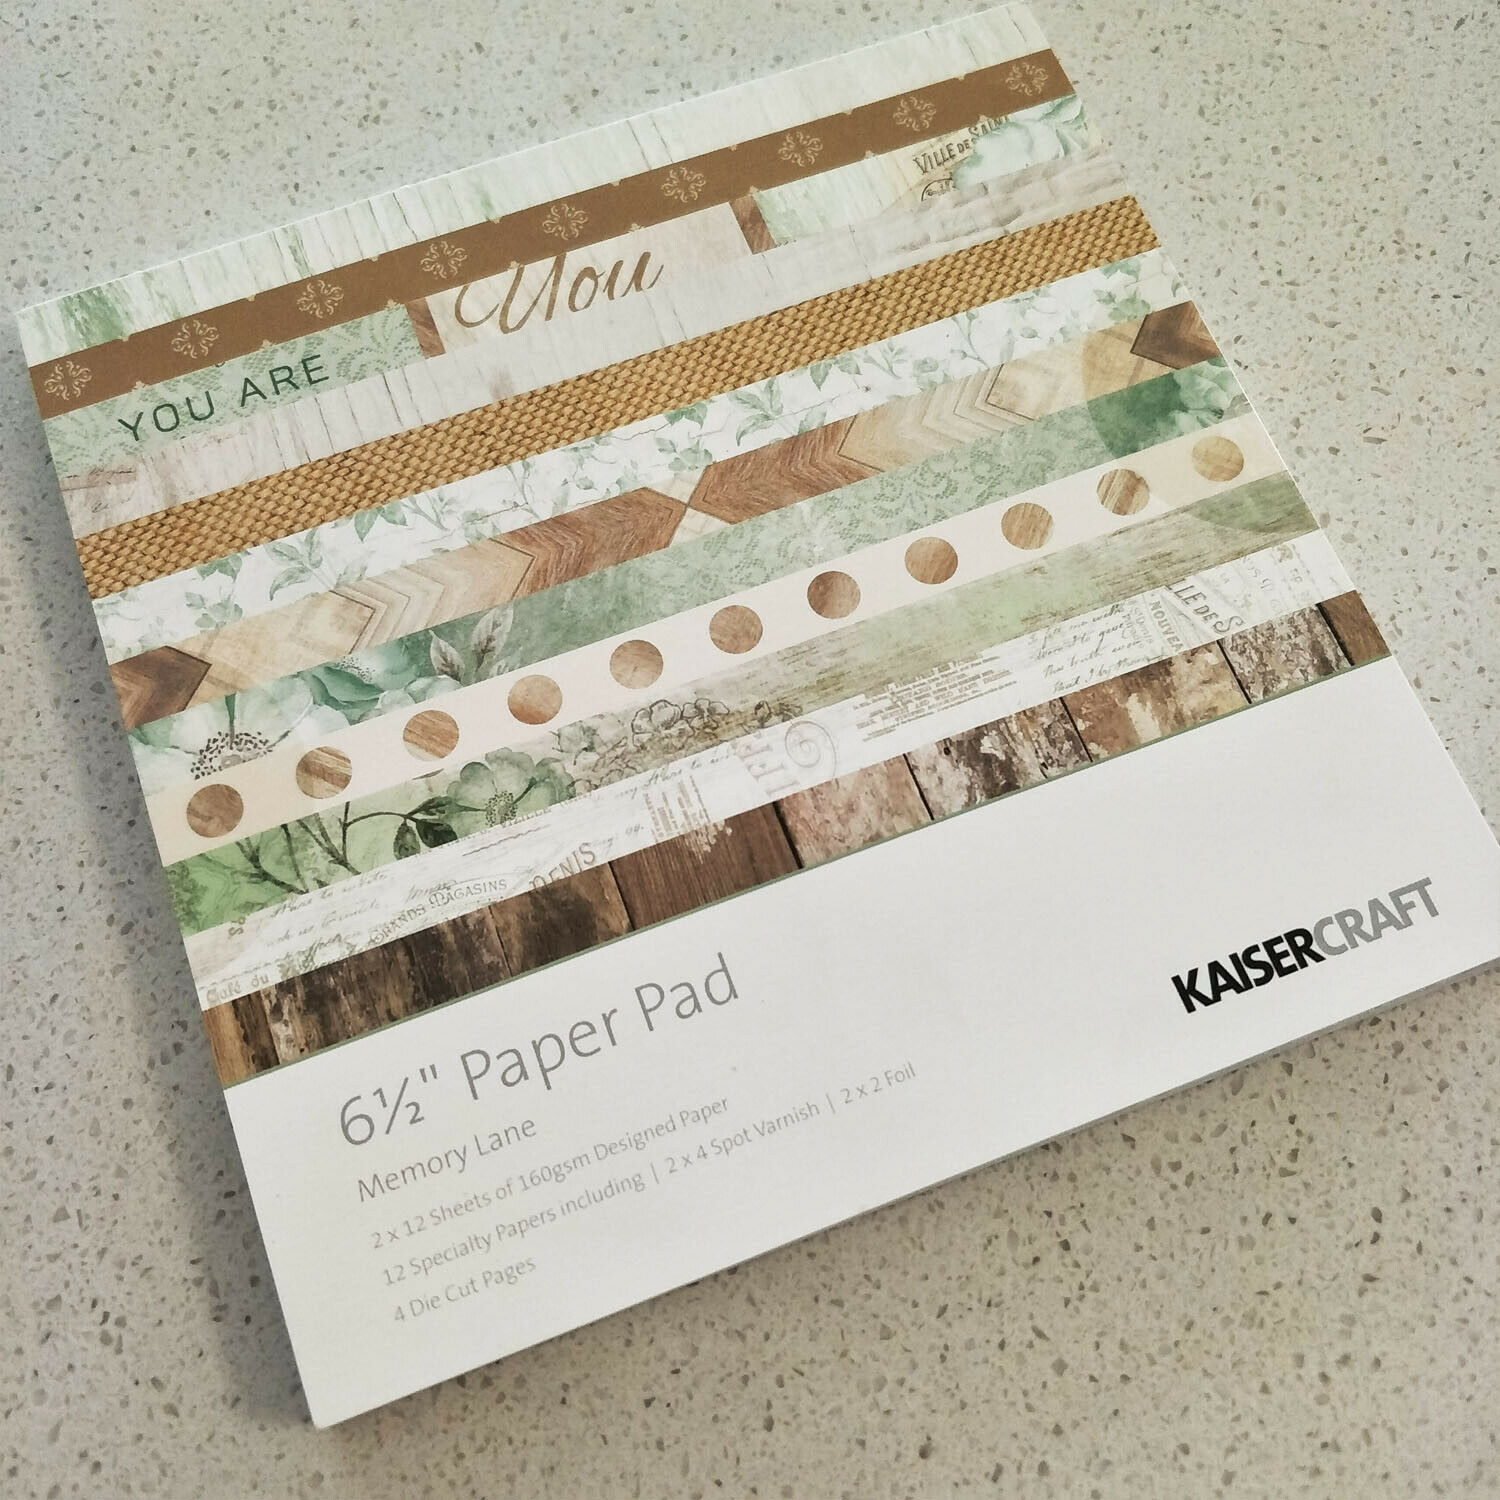 2016 - 2019 Discounted KAISERCRAFT paper pads 6.5 * 6.5 inch 20 options - Memory Lane